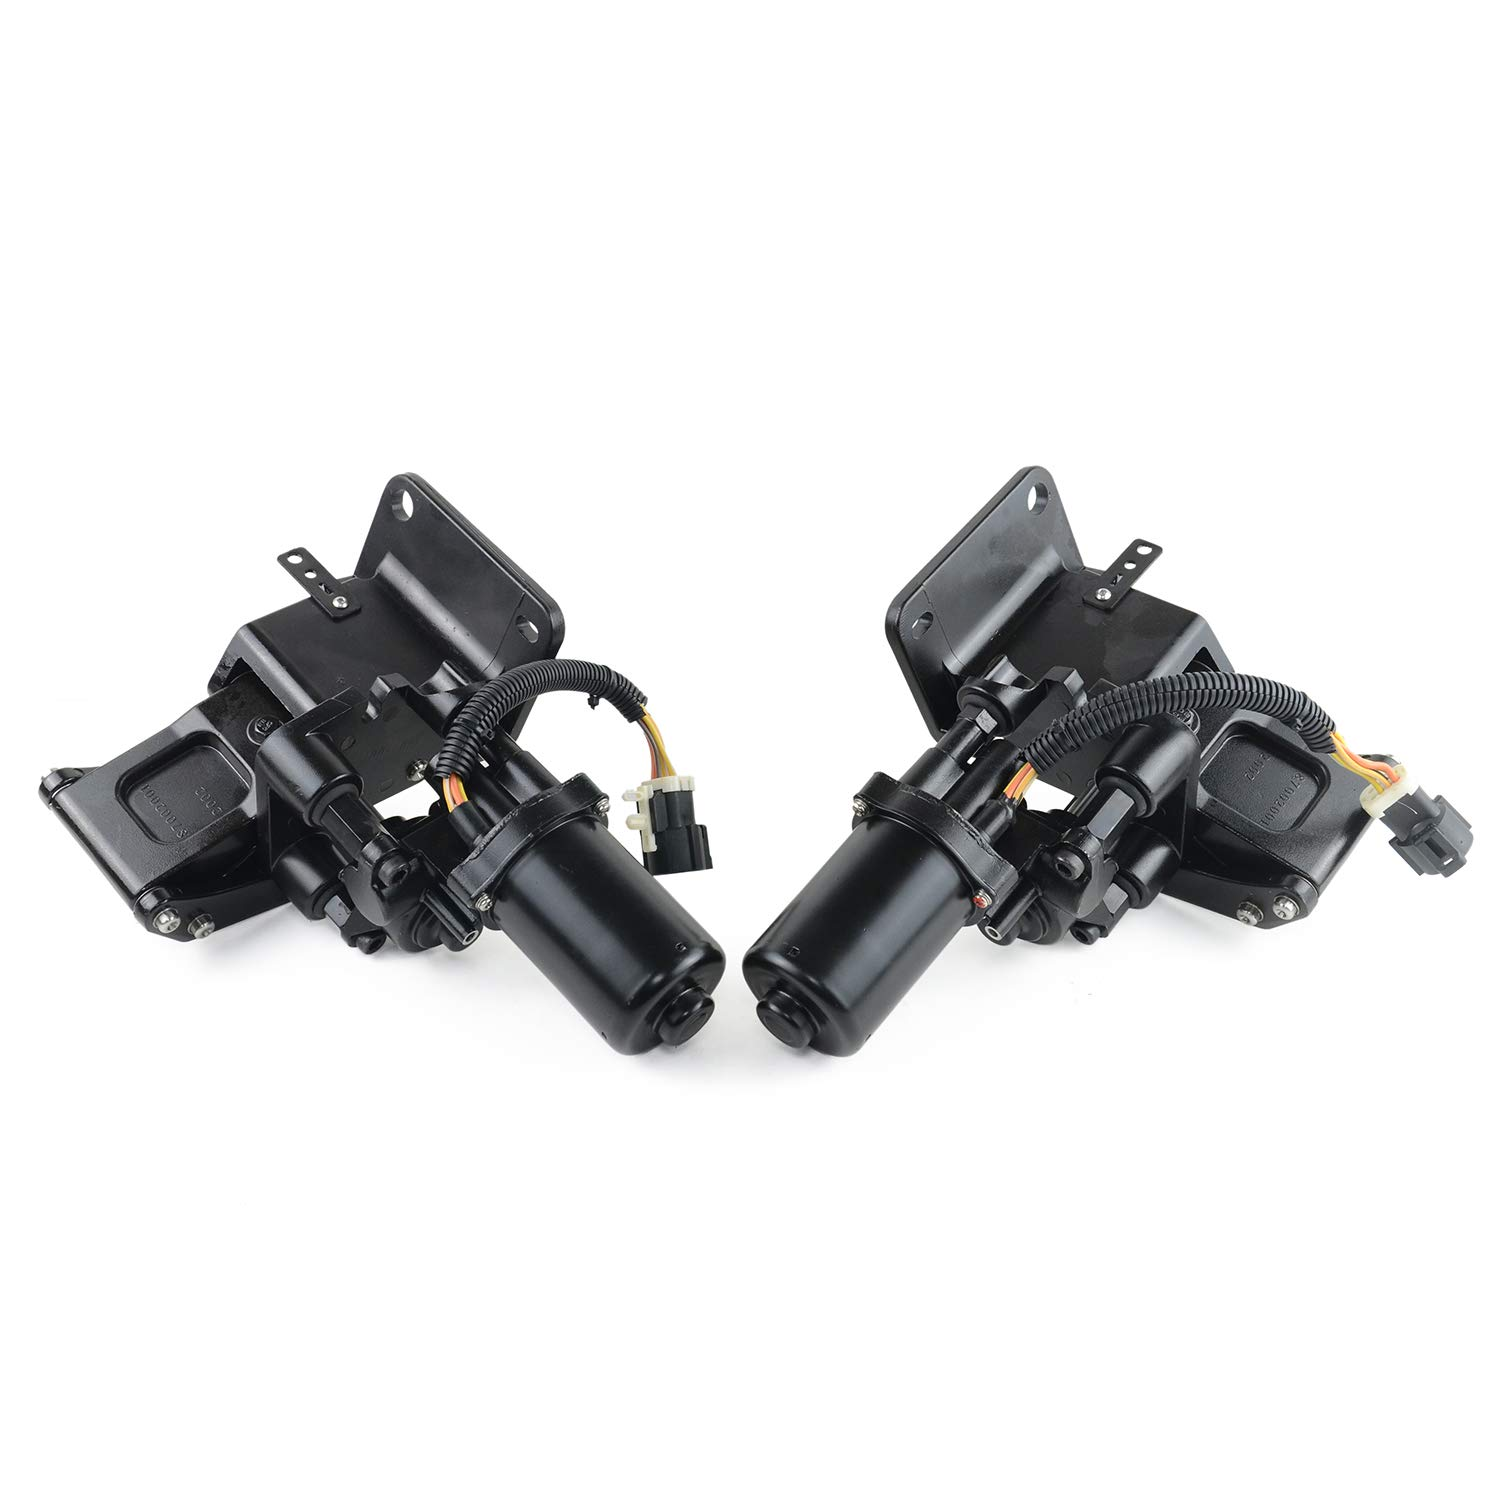 9L7Z16A507A 747-900 For Ford Expedition Lincoln Navigator 2007-2014 Pair Left /& Right Running Board Motor 9L7Z16A506A